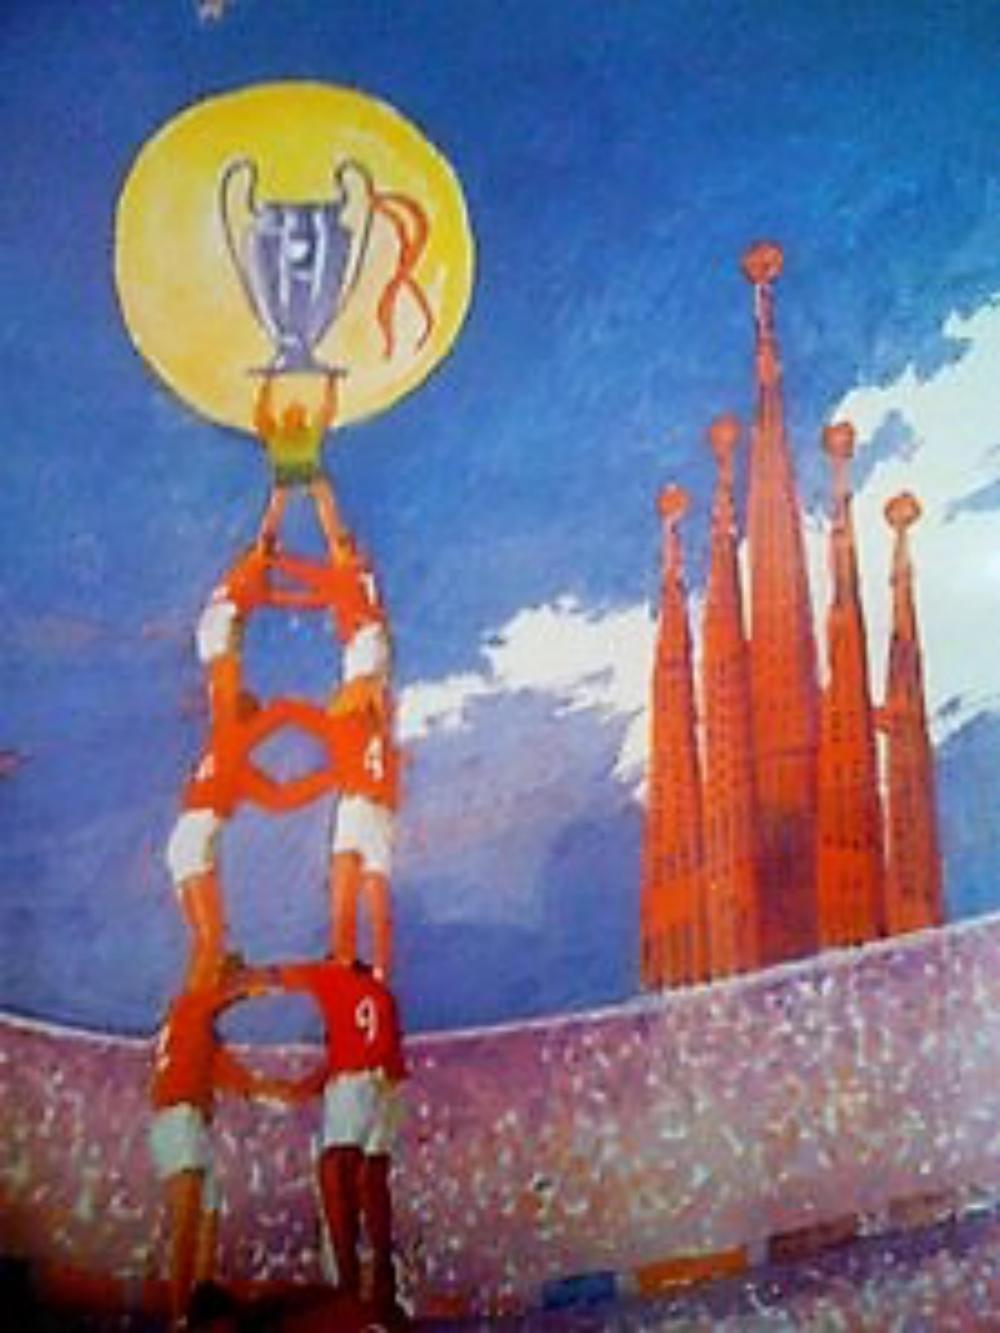 Lot 14 - 1999 Treble Celebration Print by Spanish Artist - The 1998?99 season was the most successful season in the history of Manchester United Football Club. After finishing the previous season without winning any titles, United won a